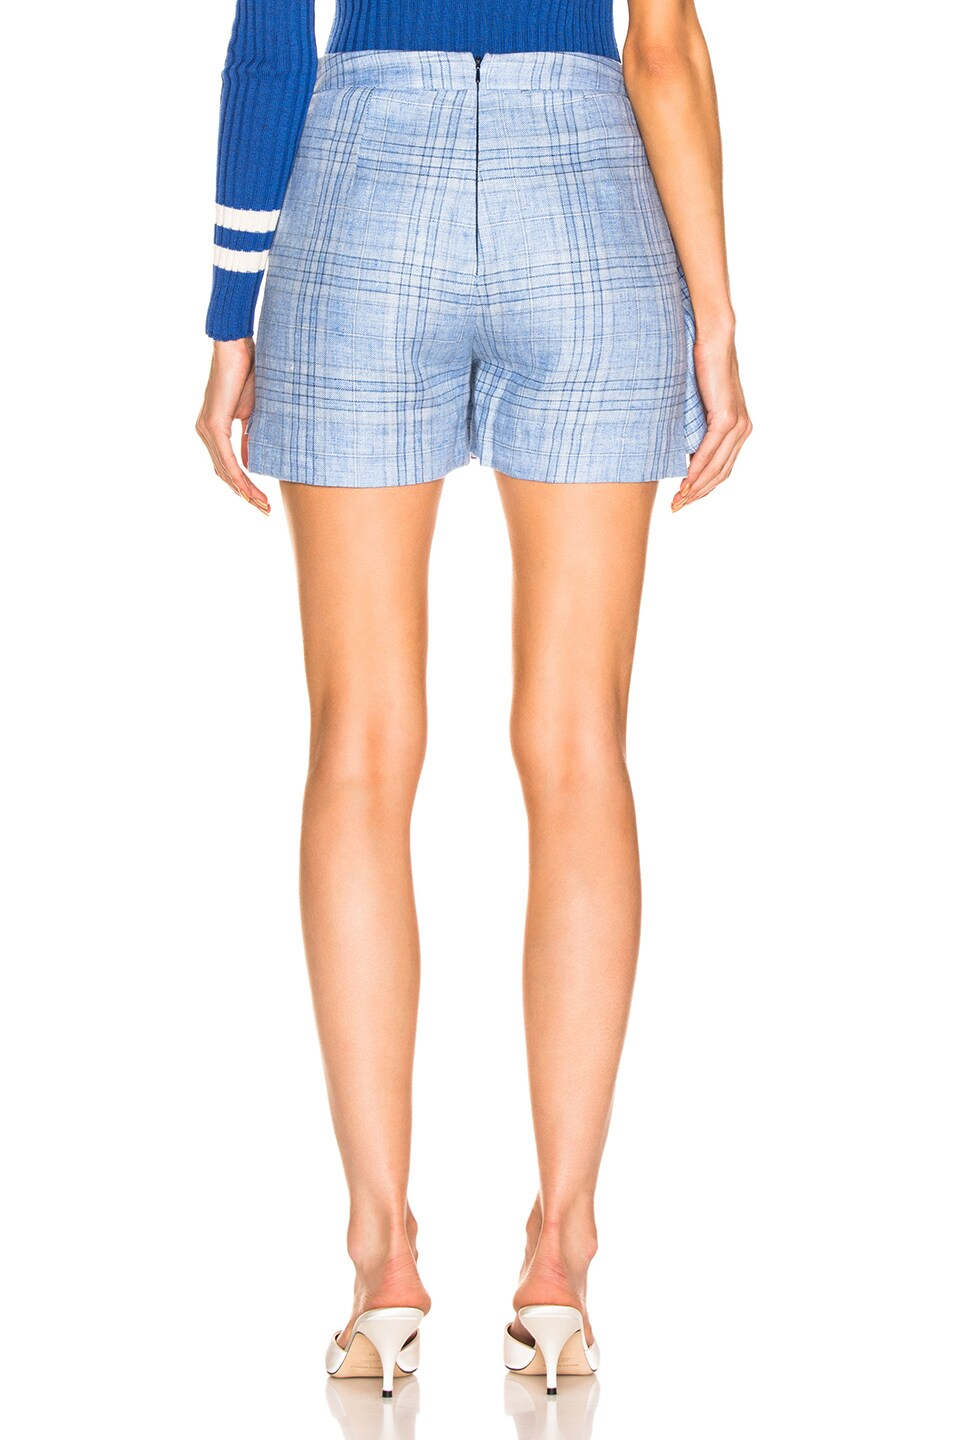 Image 3 of Maggie Marilyn Say You'll Never Let me Go Blue Skort in Baby Blue Check